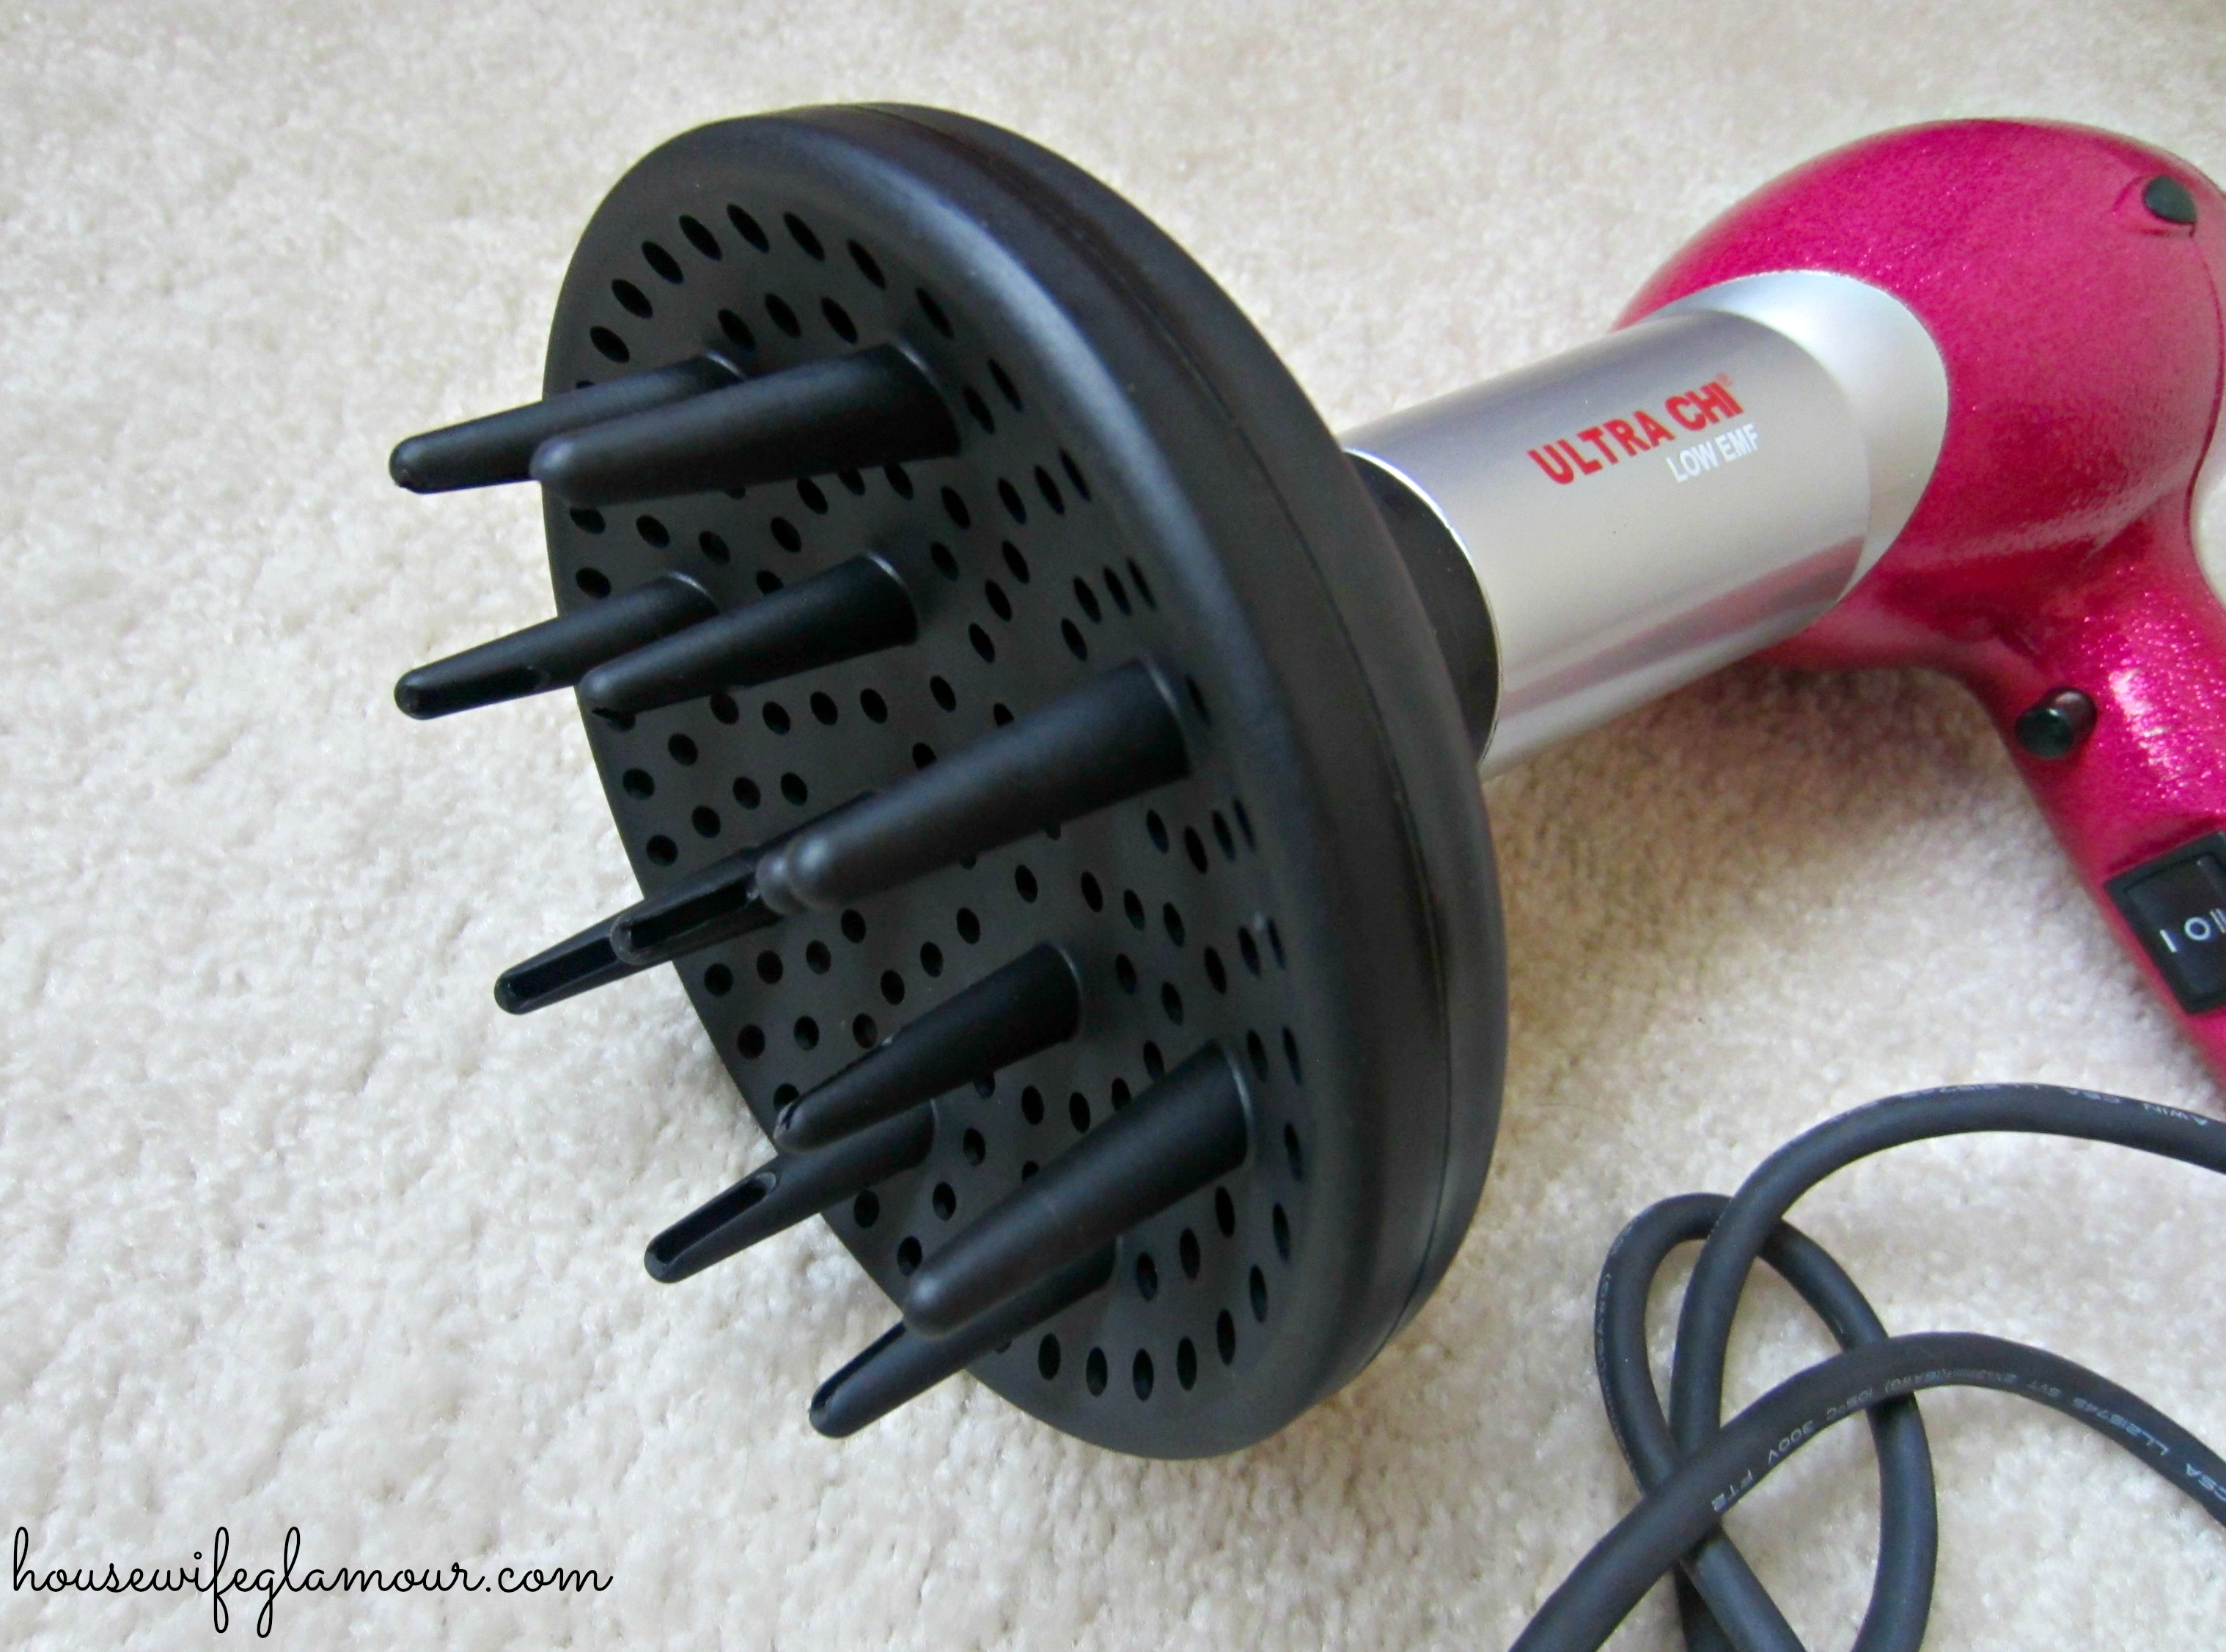 CHI diffuser attachment for curling hair